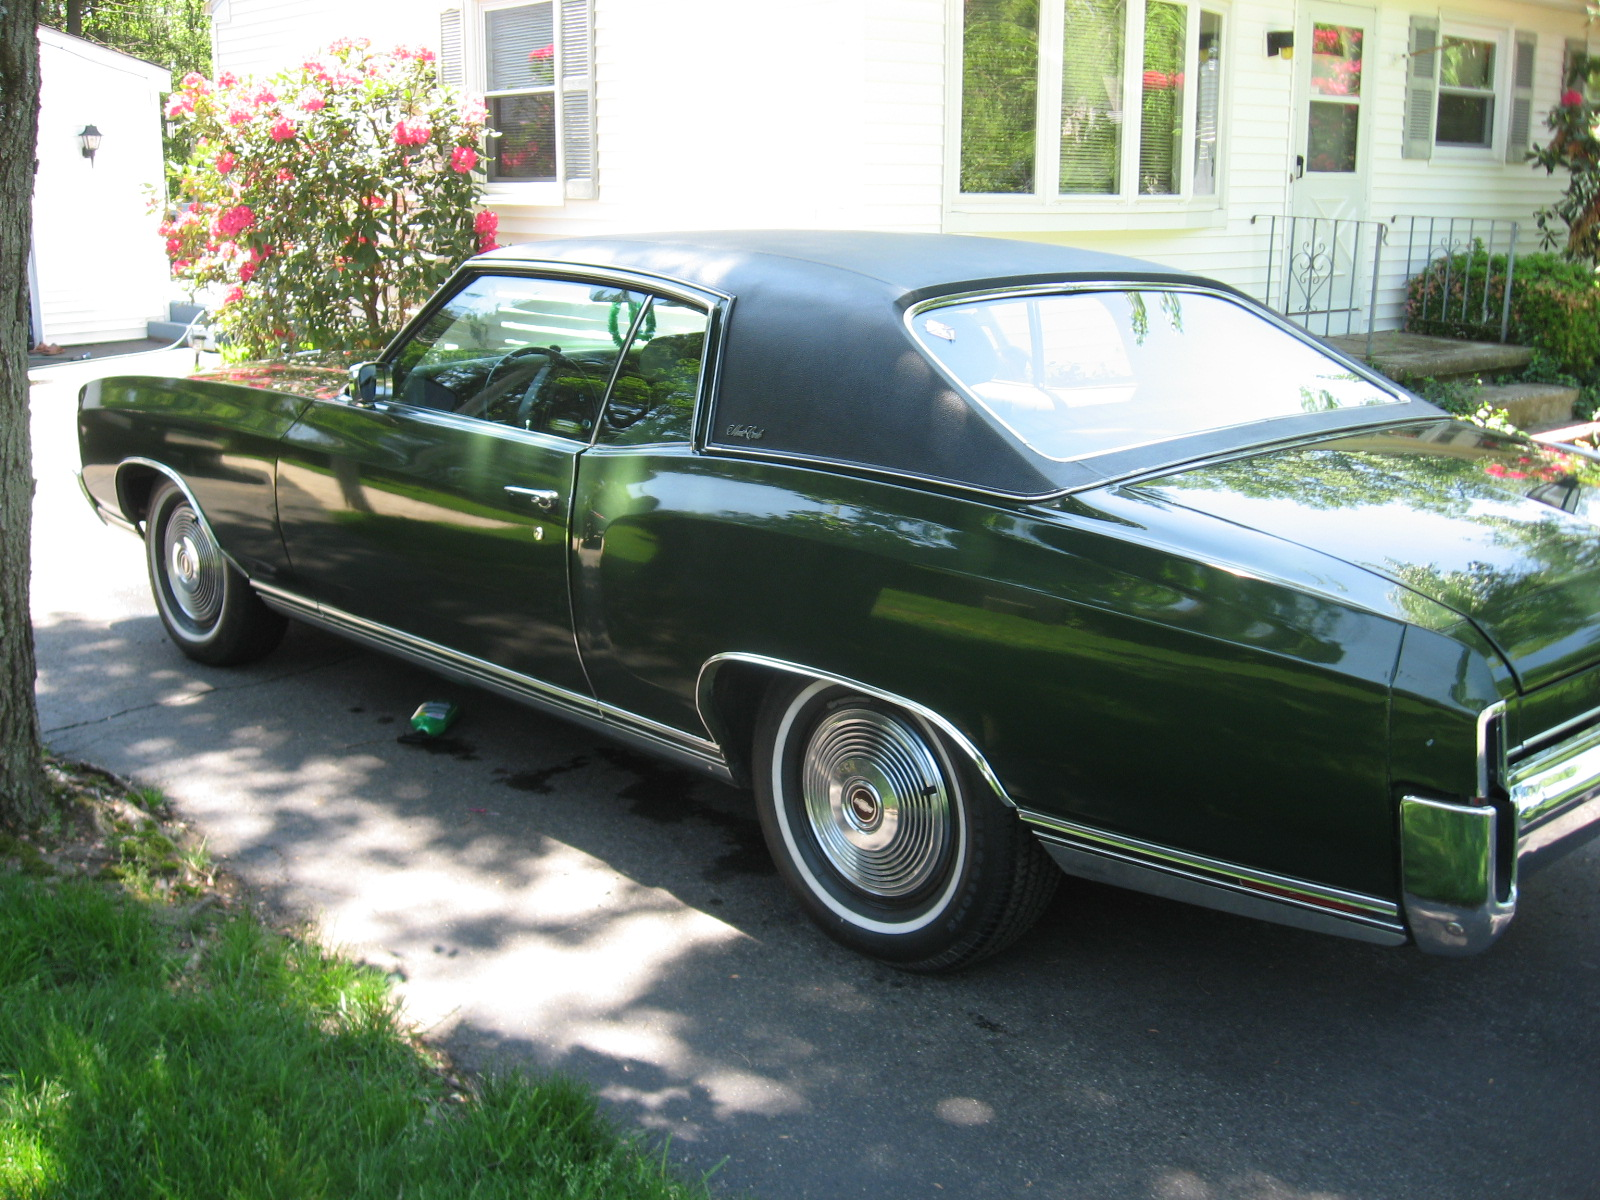 1971 Chevrolet Monte Carlo Pictures C4357 pi36380520 also Watch furthermore Watch in addition Watch likewise 1961 Chevrolet Impala Series photo. on 2004 chevy impala